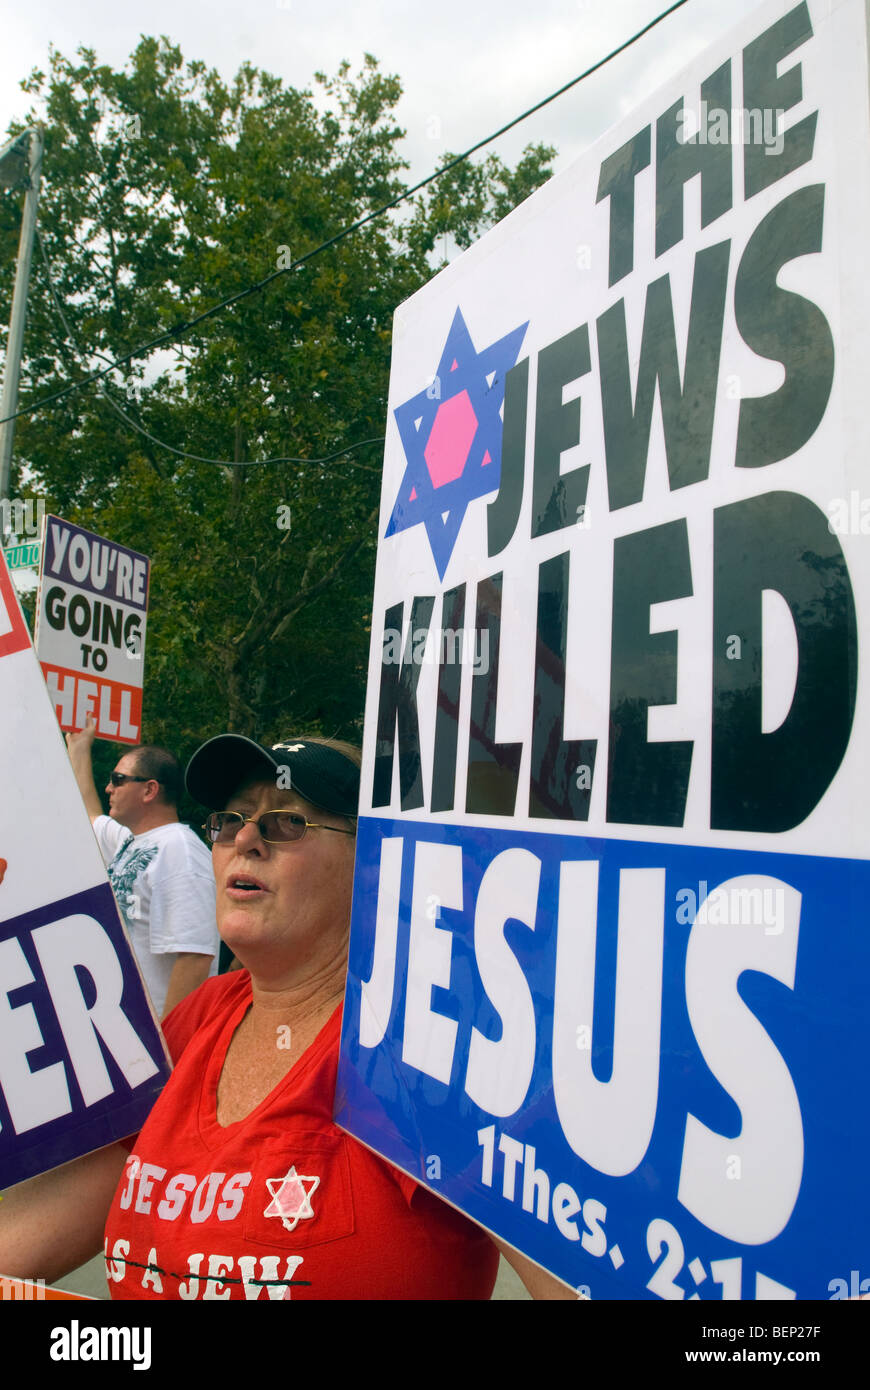 Members of the Westboro Baptist Church protest in front of Brooklyn Technical High School in New York - Stock Image